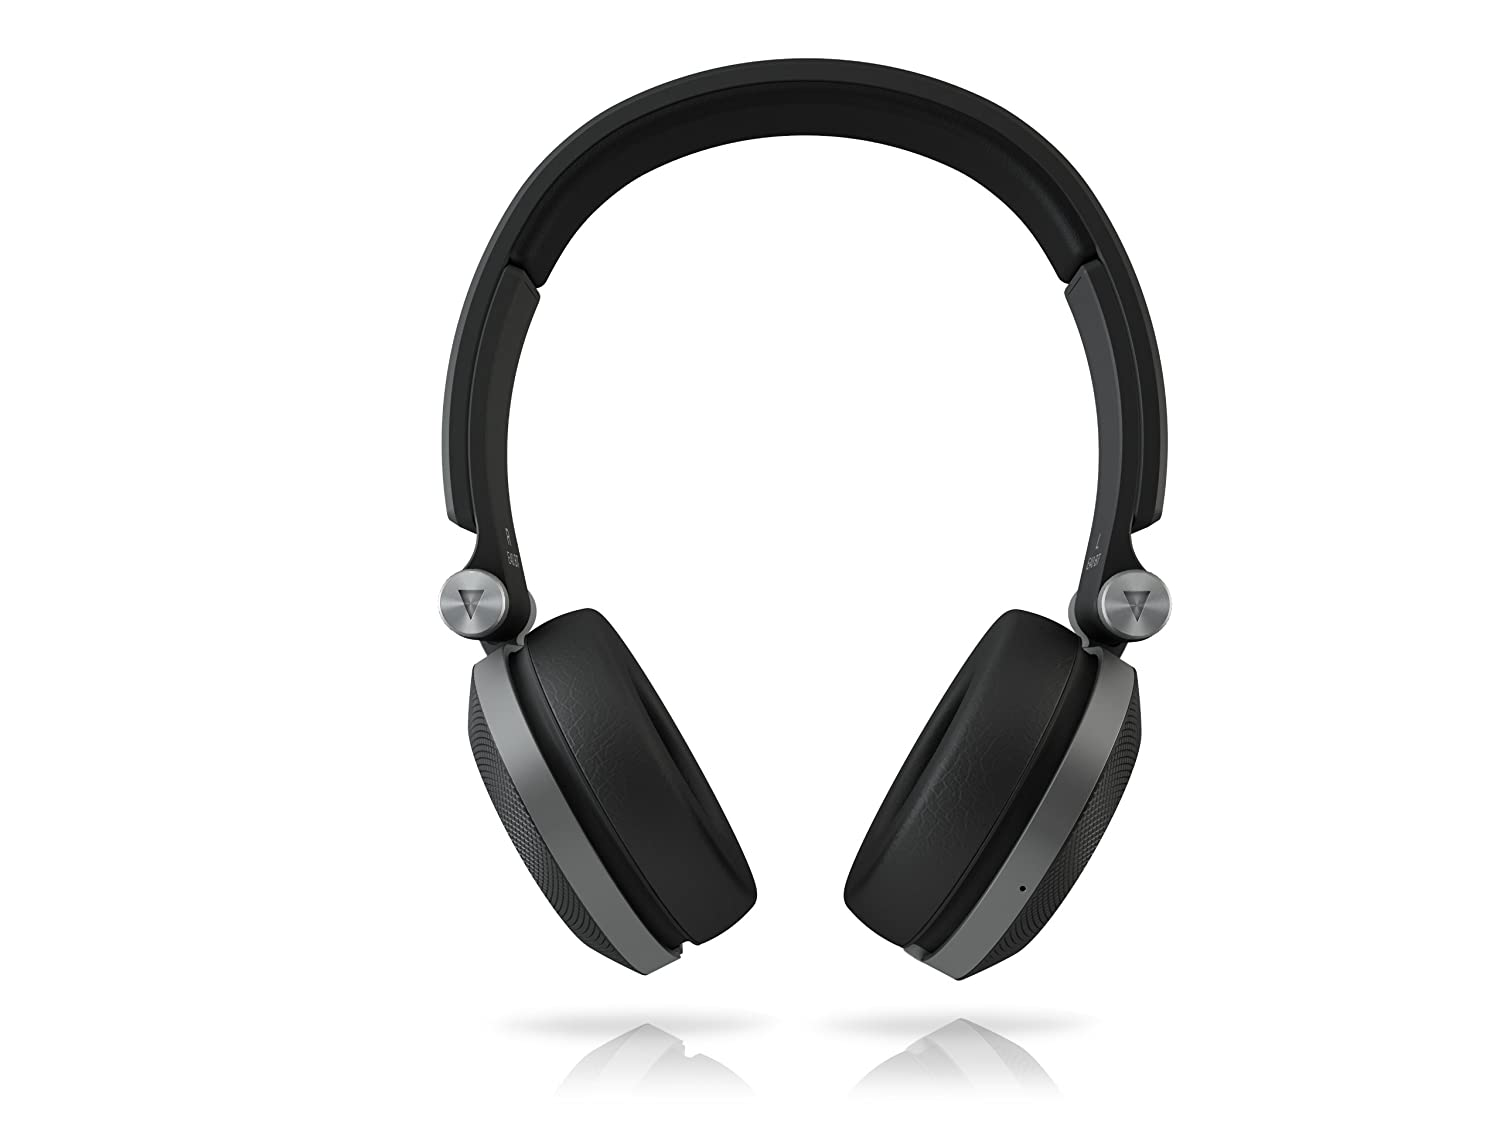 Jbl Synchros E40bt Bluetooth On Ear Headphones With Headset Wireless Stereo S990 New Design Signature Sound Purebass Performance Shareme Music Sharing And A Superior